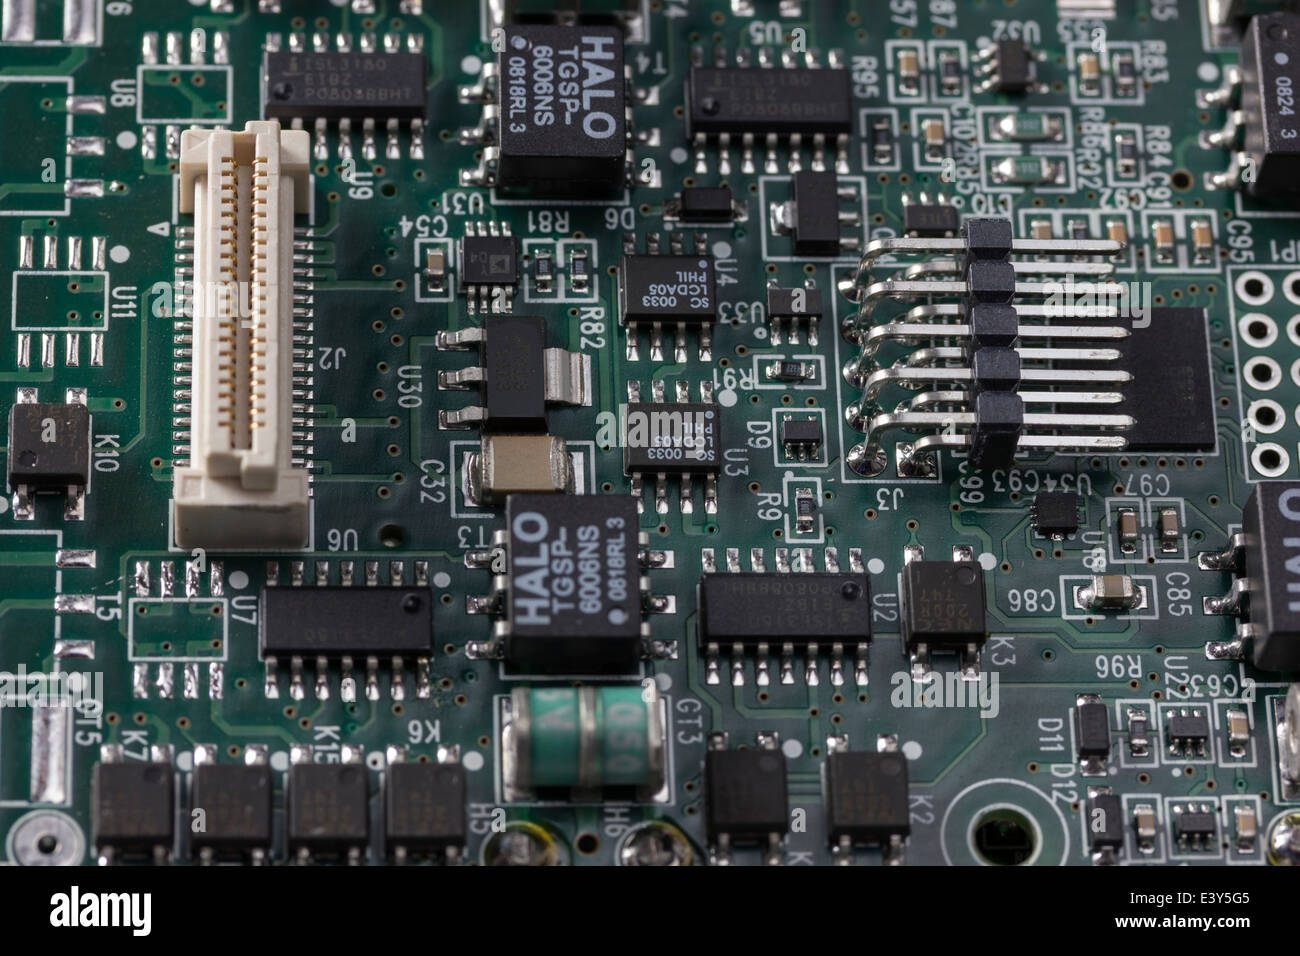 Pcb Tracks Stock Photos Images Alamy Printed Circuit Board Throughhole Technology Royalty Free Image